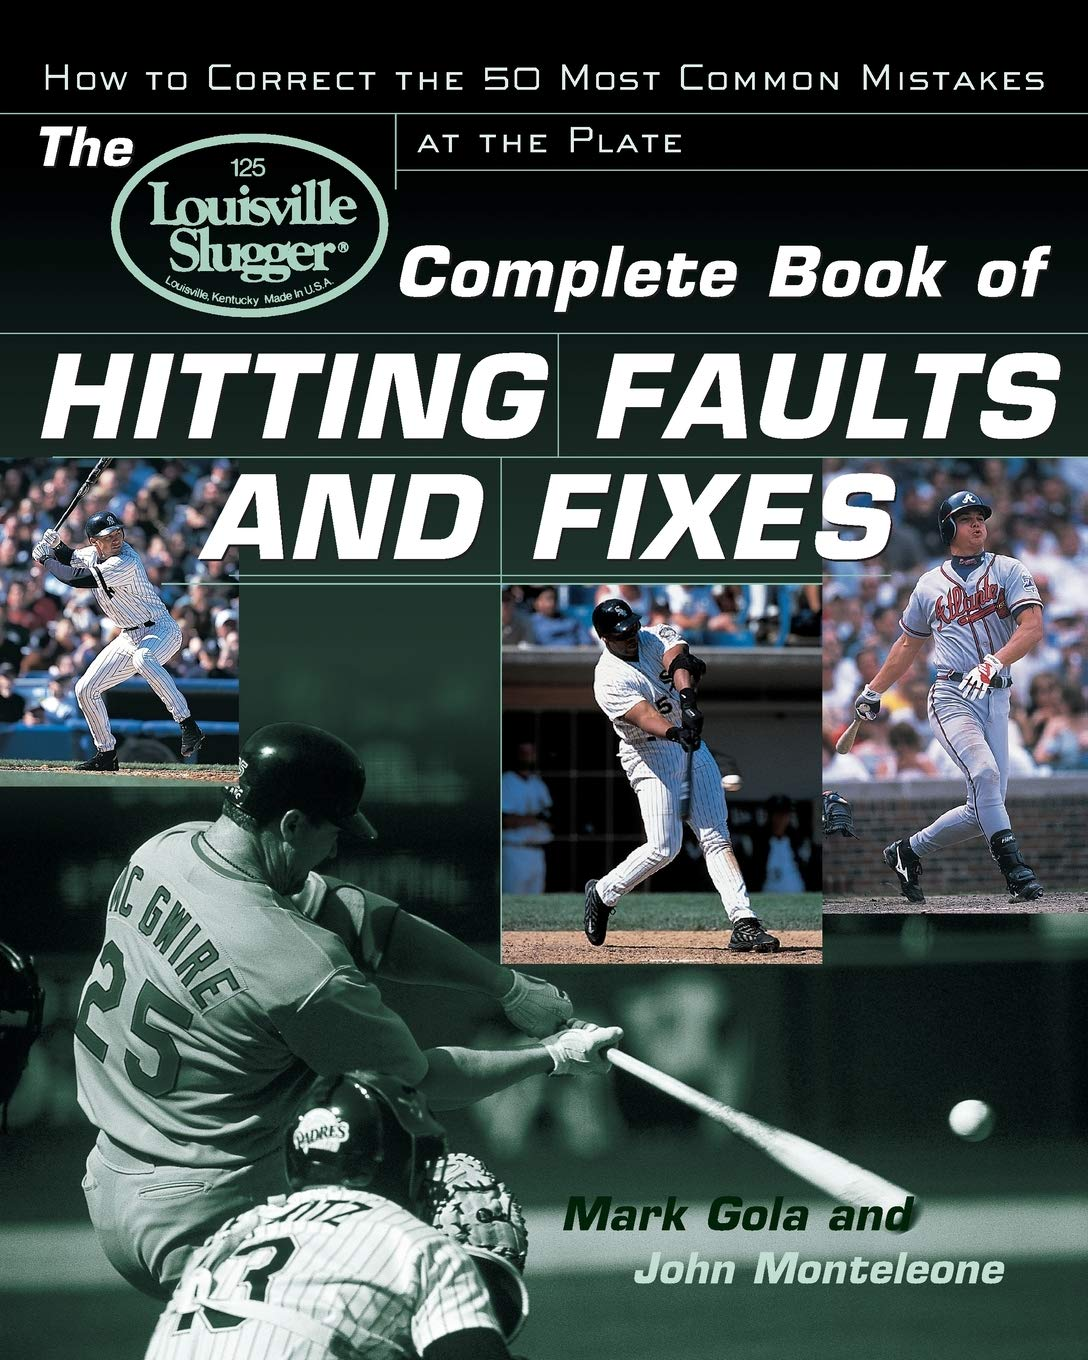 The Louisville Slugger Complete Book of Pitching